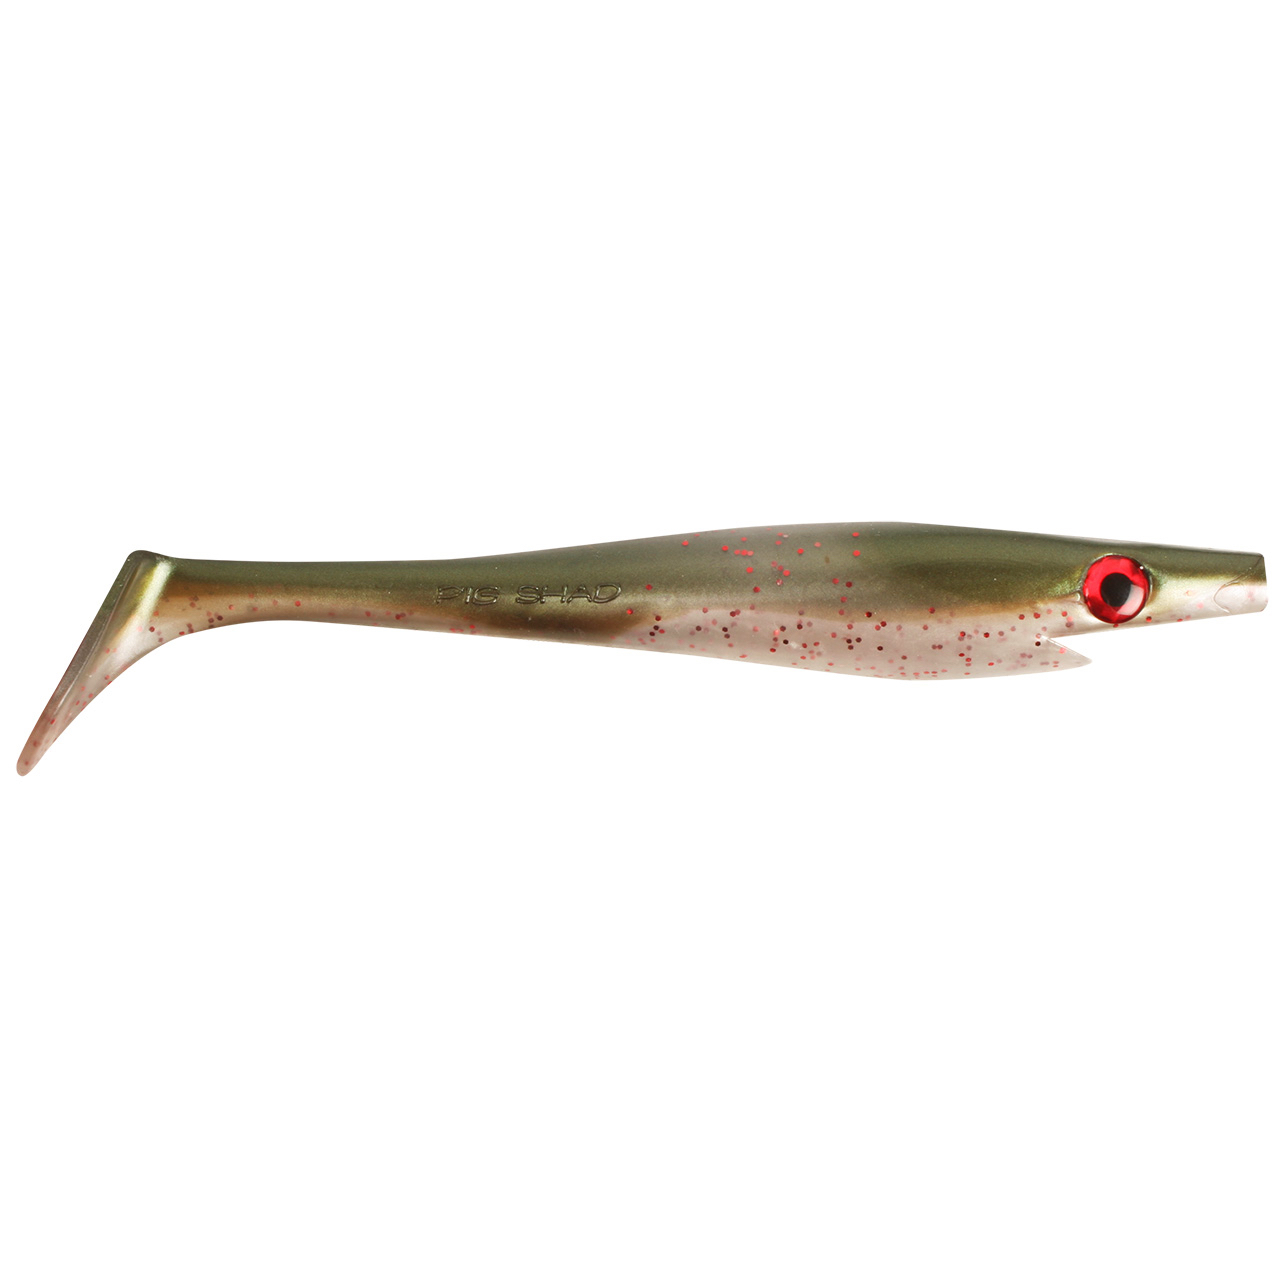 Strike Pro Pig Shad Jr. SP-172C#104 Arkansas Shiner